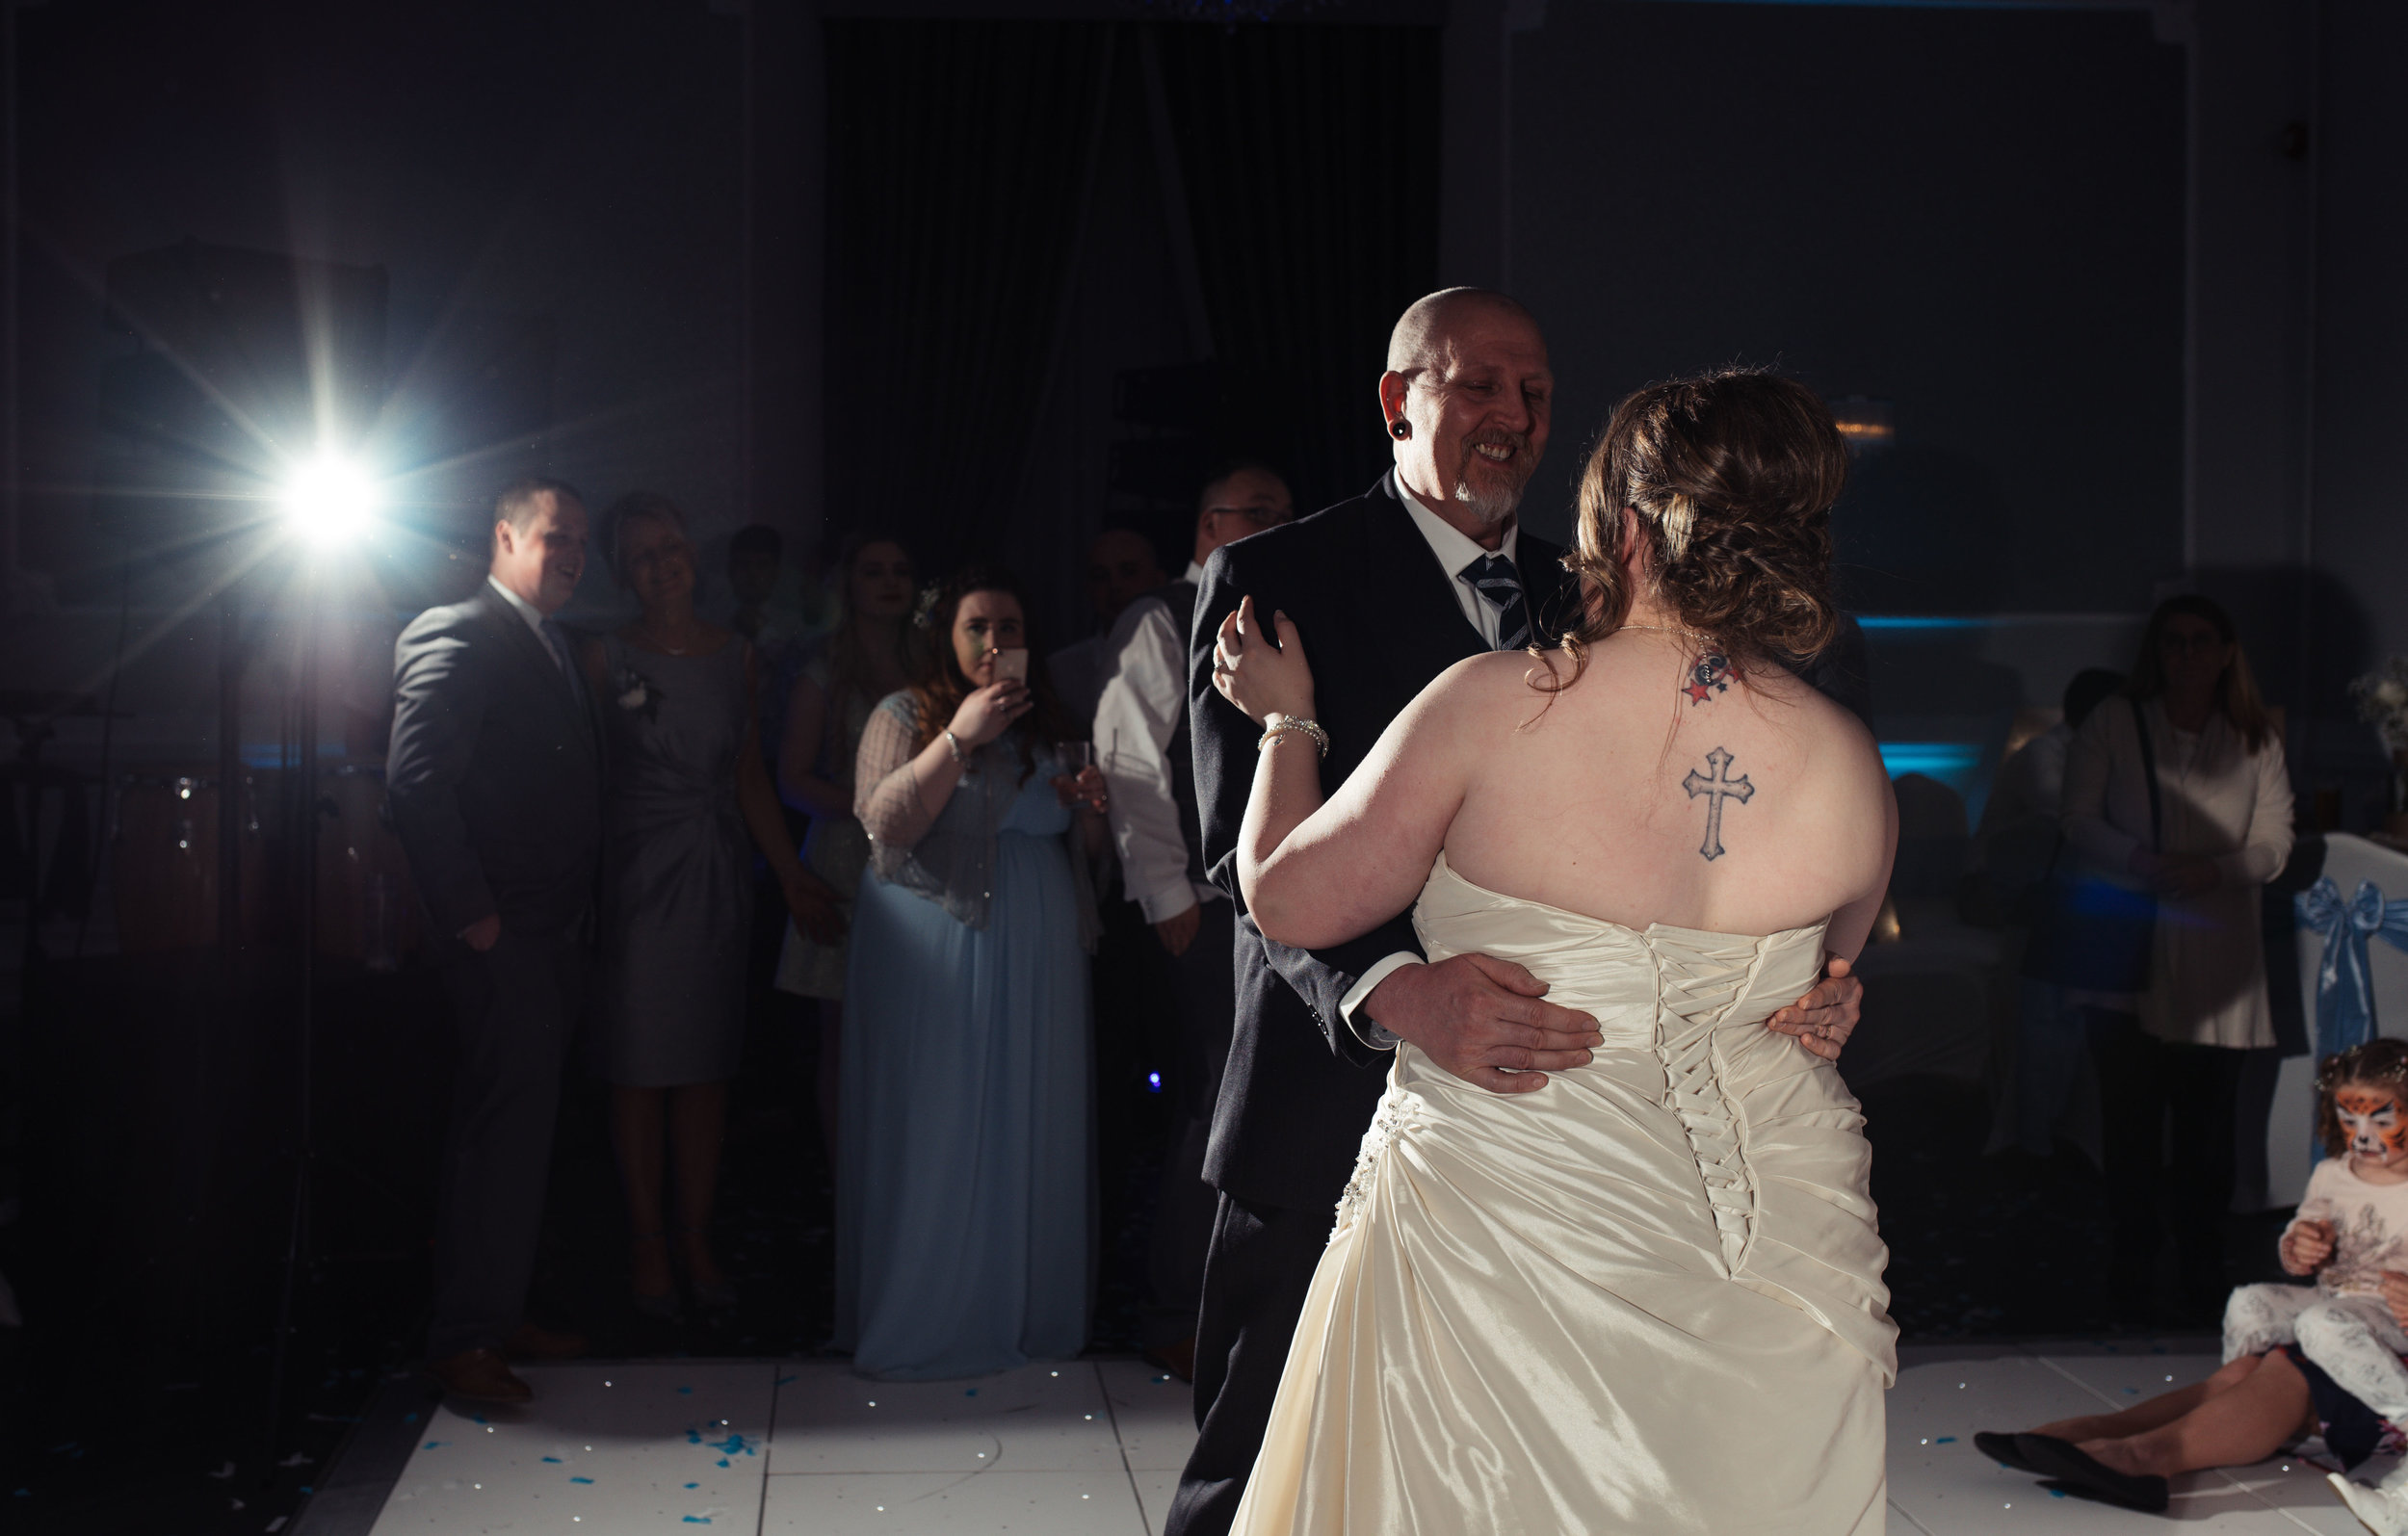 The bride has a dance with her father during the evening wedding reception